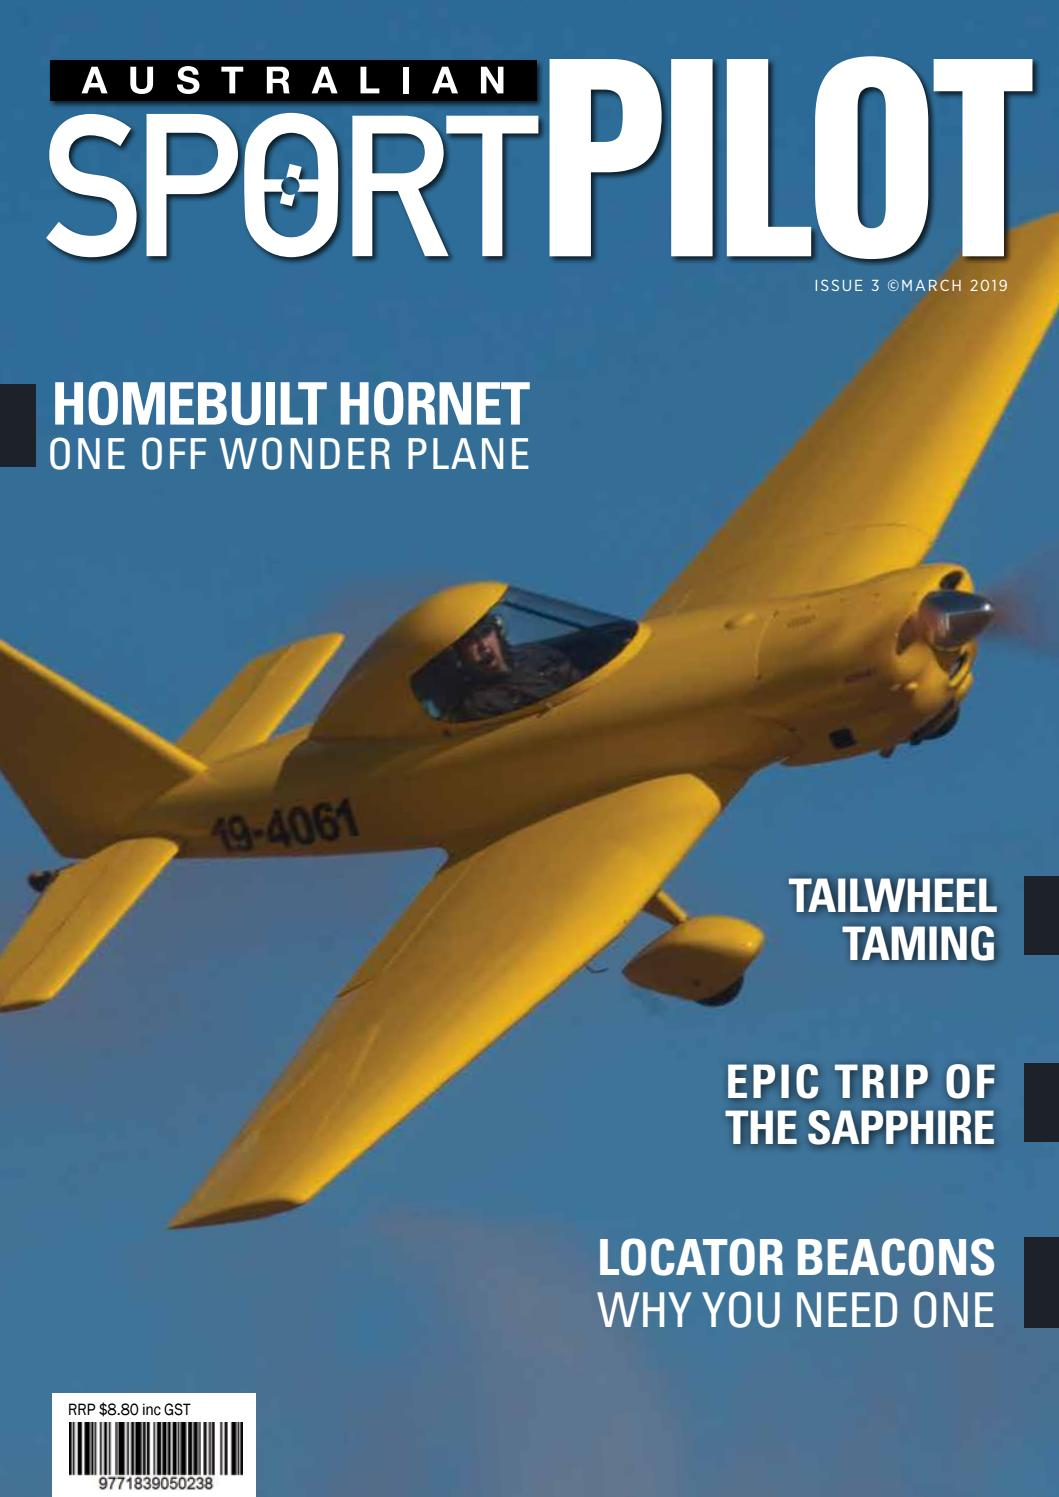 Australian Sport Pilot magazine - March 2019 by Recreational